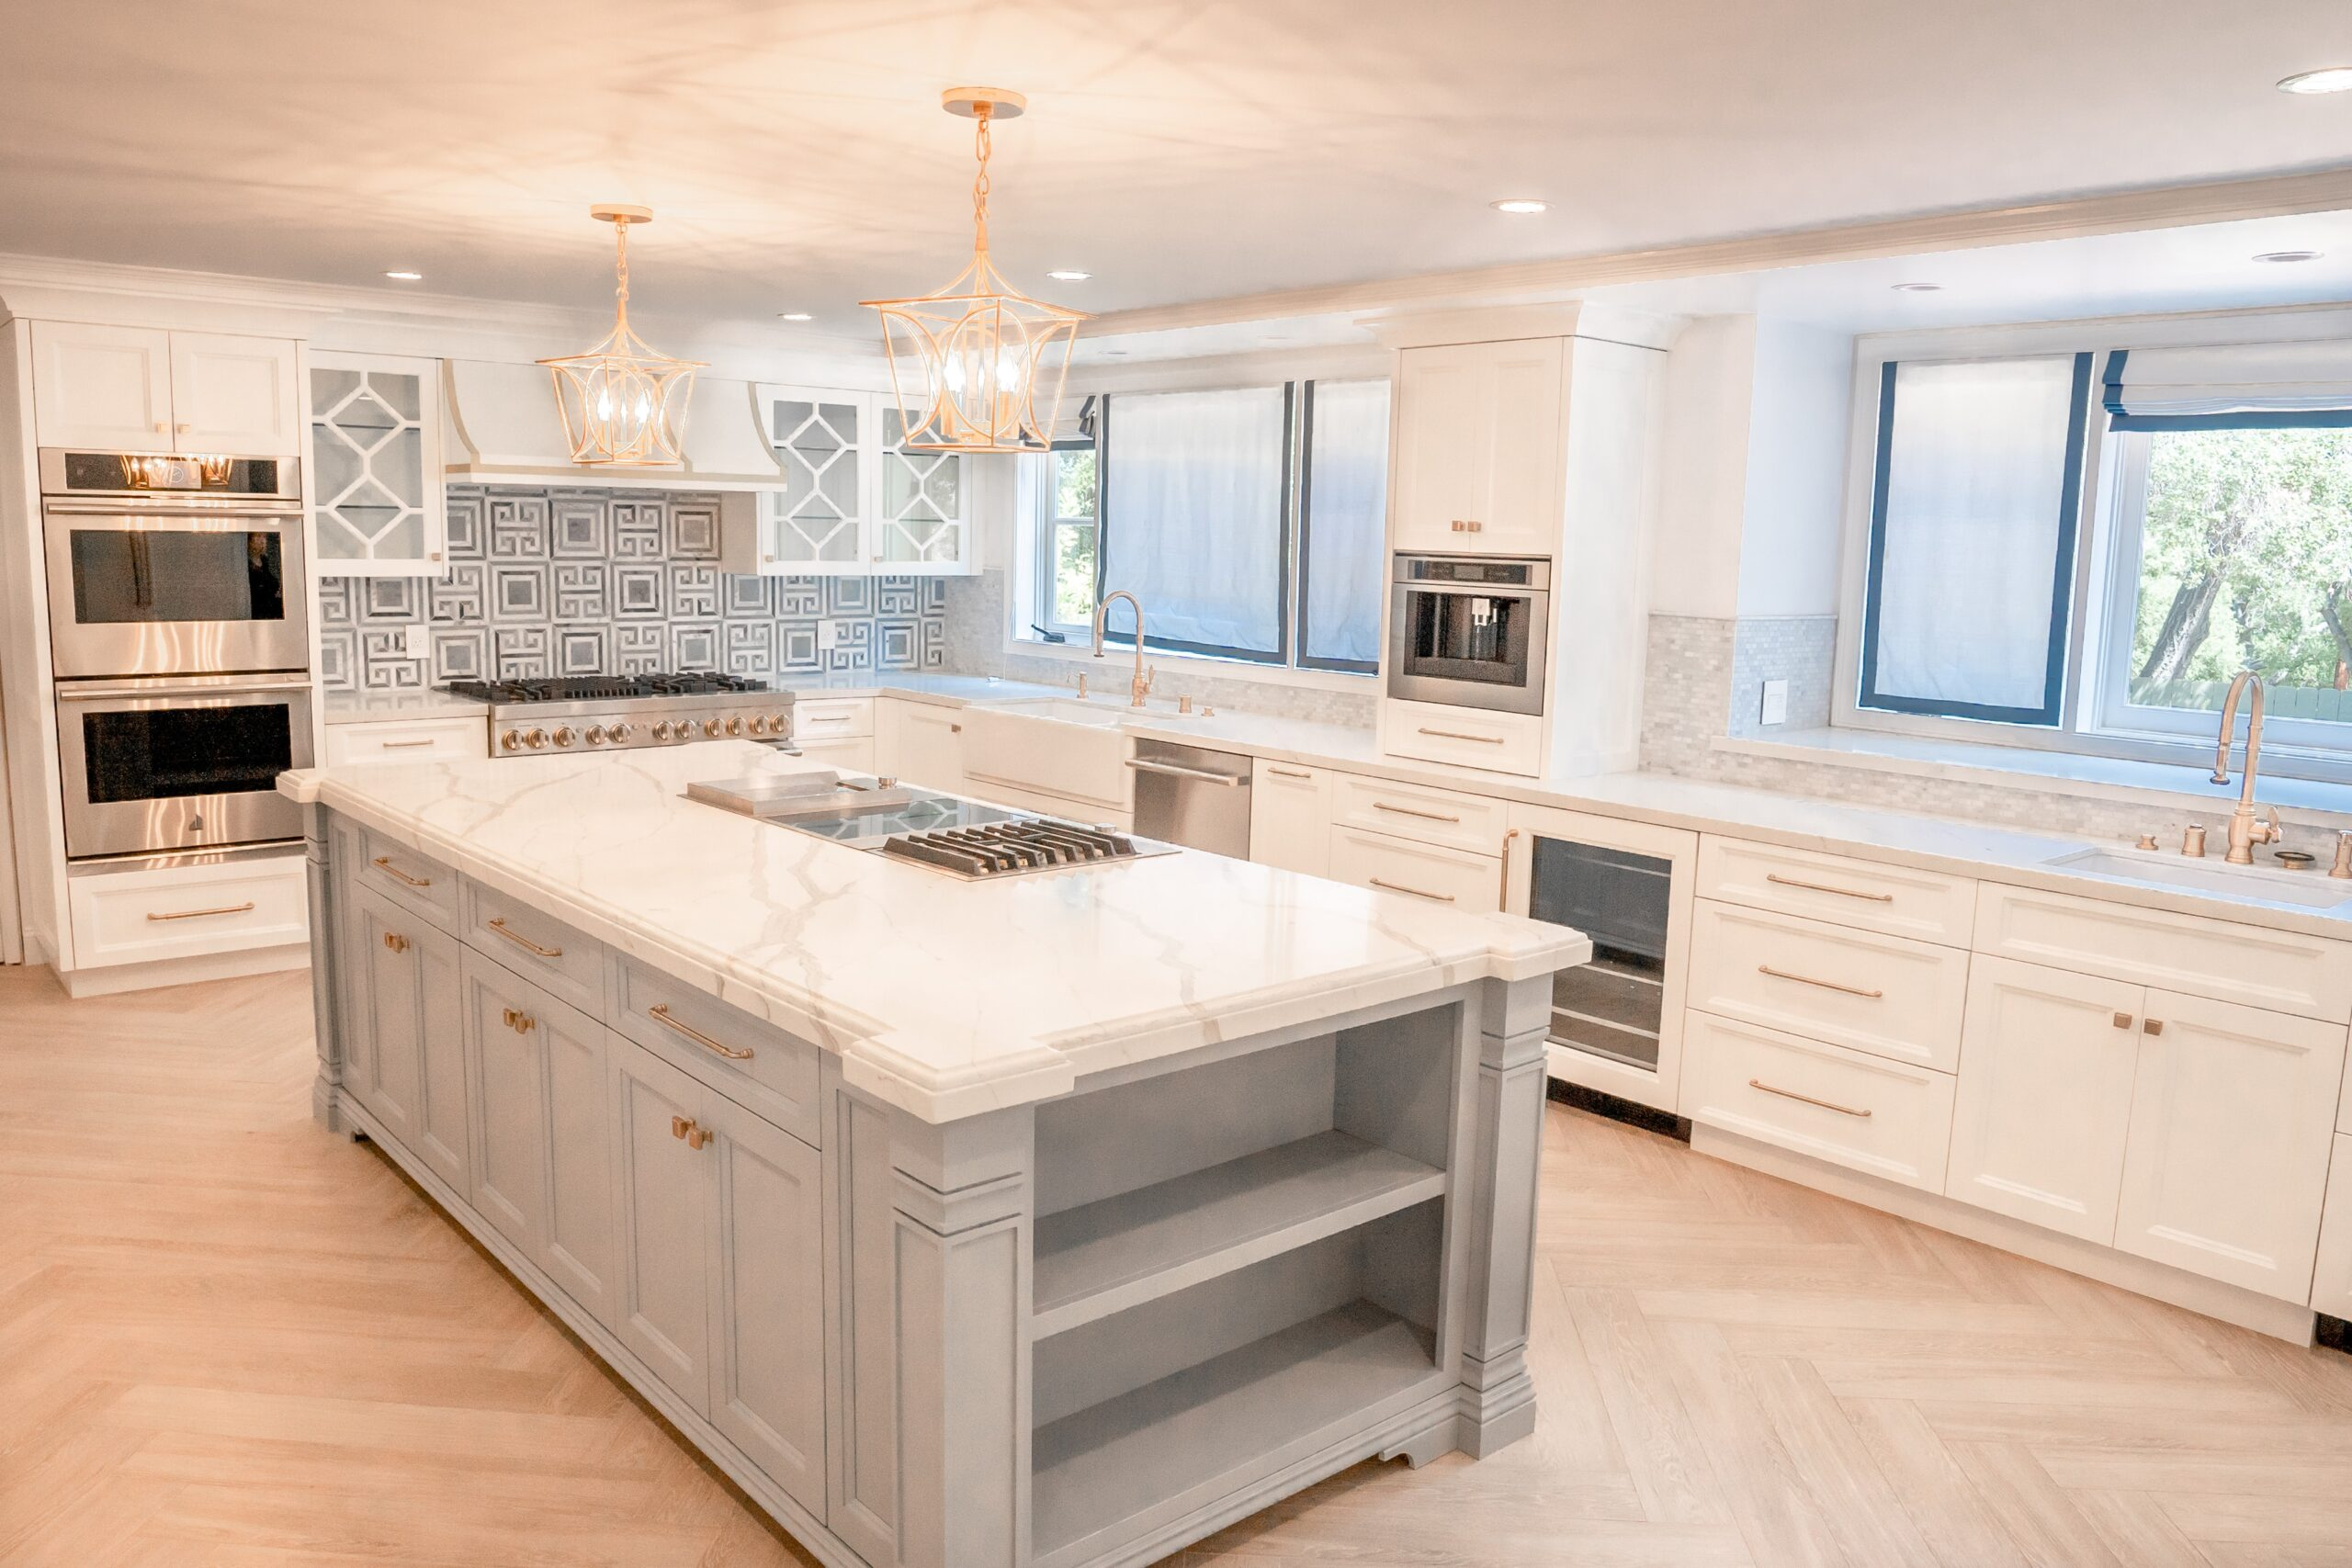 Modern kitchen remodeling complete with white cabinets and accent grey island